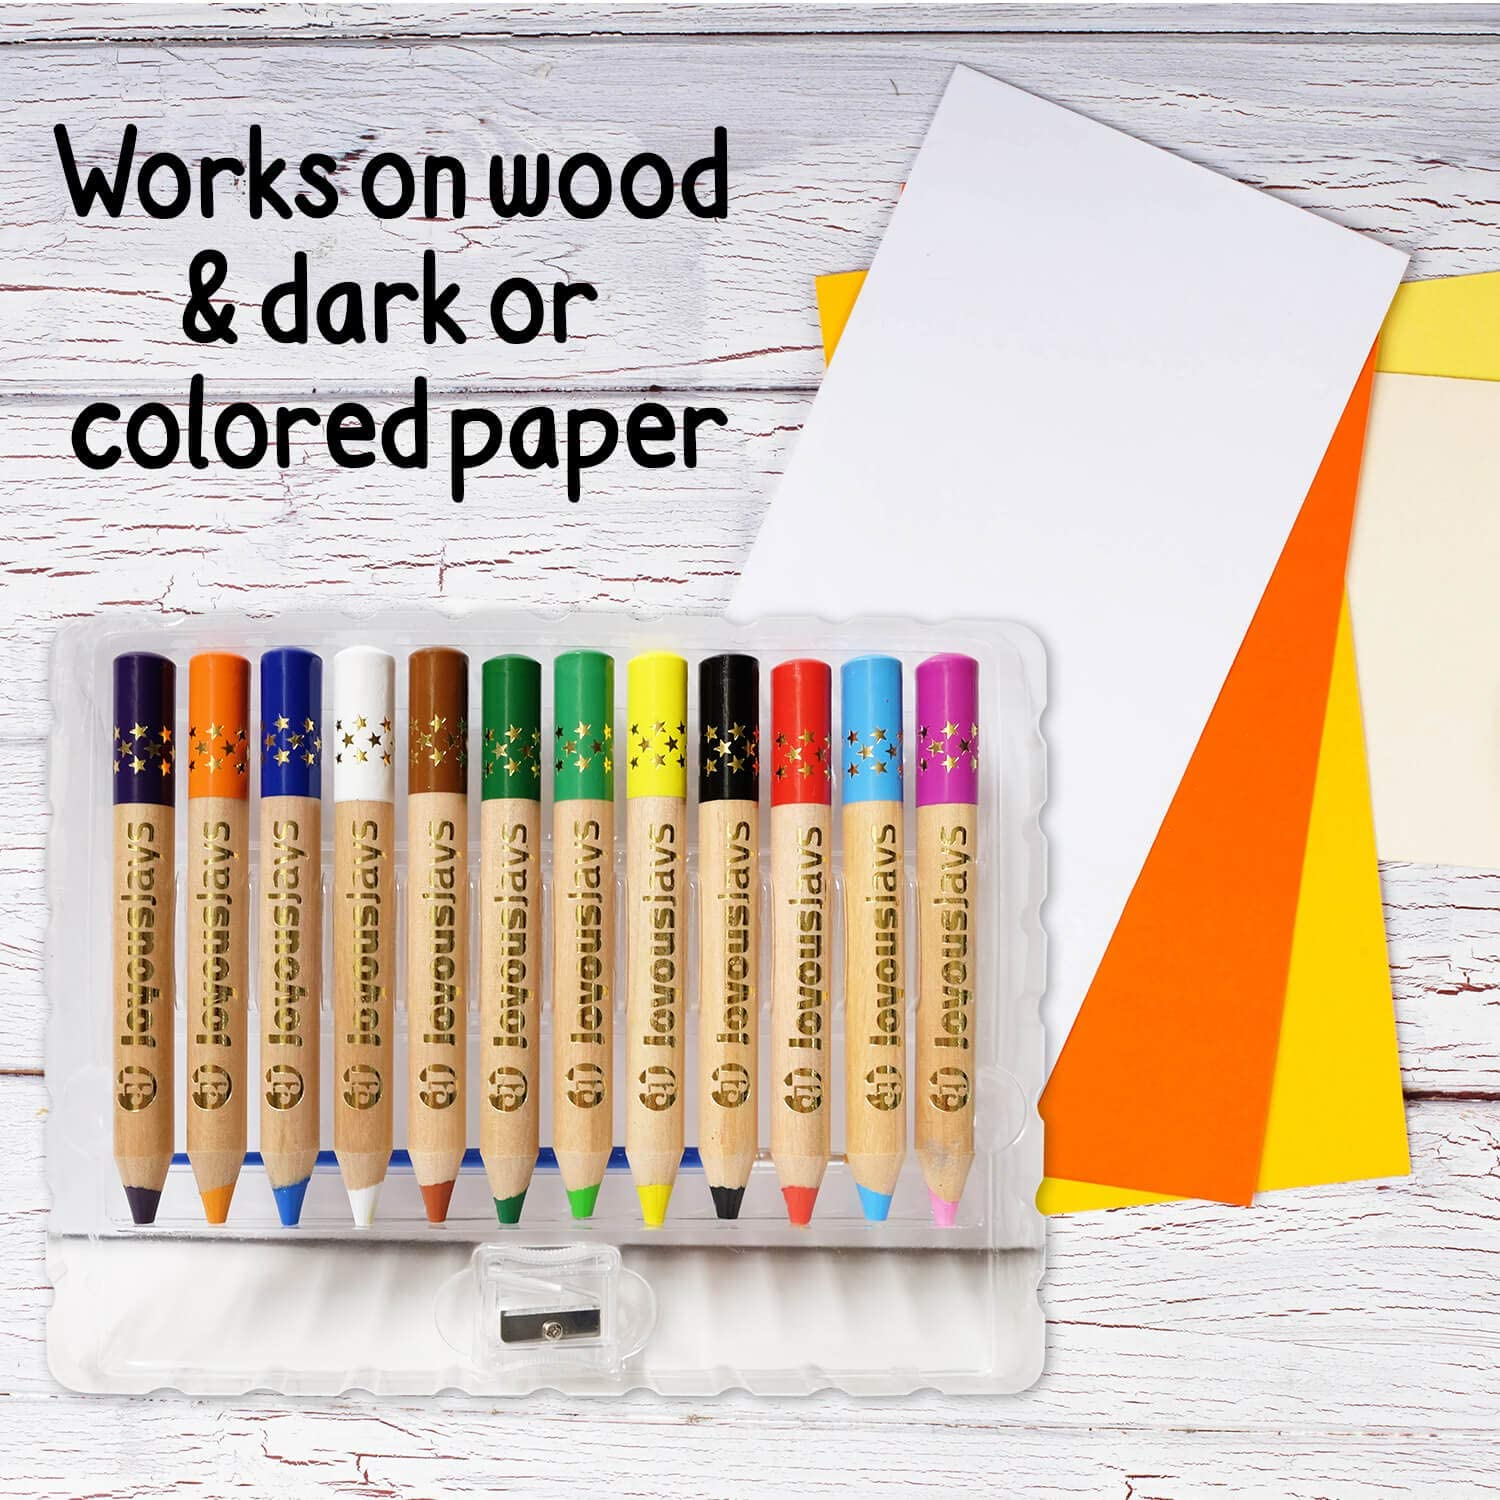 JoyousJays 3-in-1 Jumbo Colored Pencils For Kids Wax Crayon and Watercolor Coloring Pencils Set for Toddlers with Brush and Sharpener 12-Color Pack Non Toxic and Washable